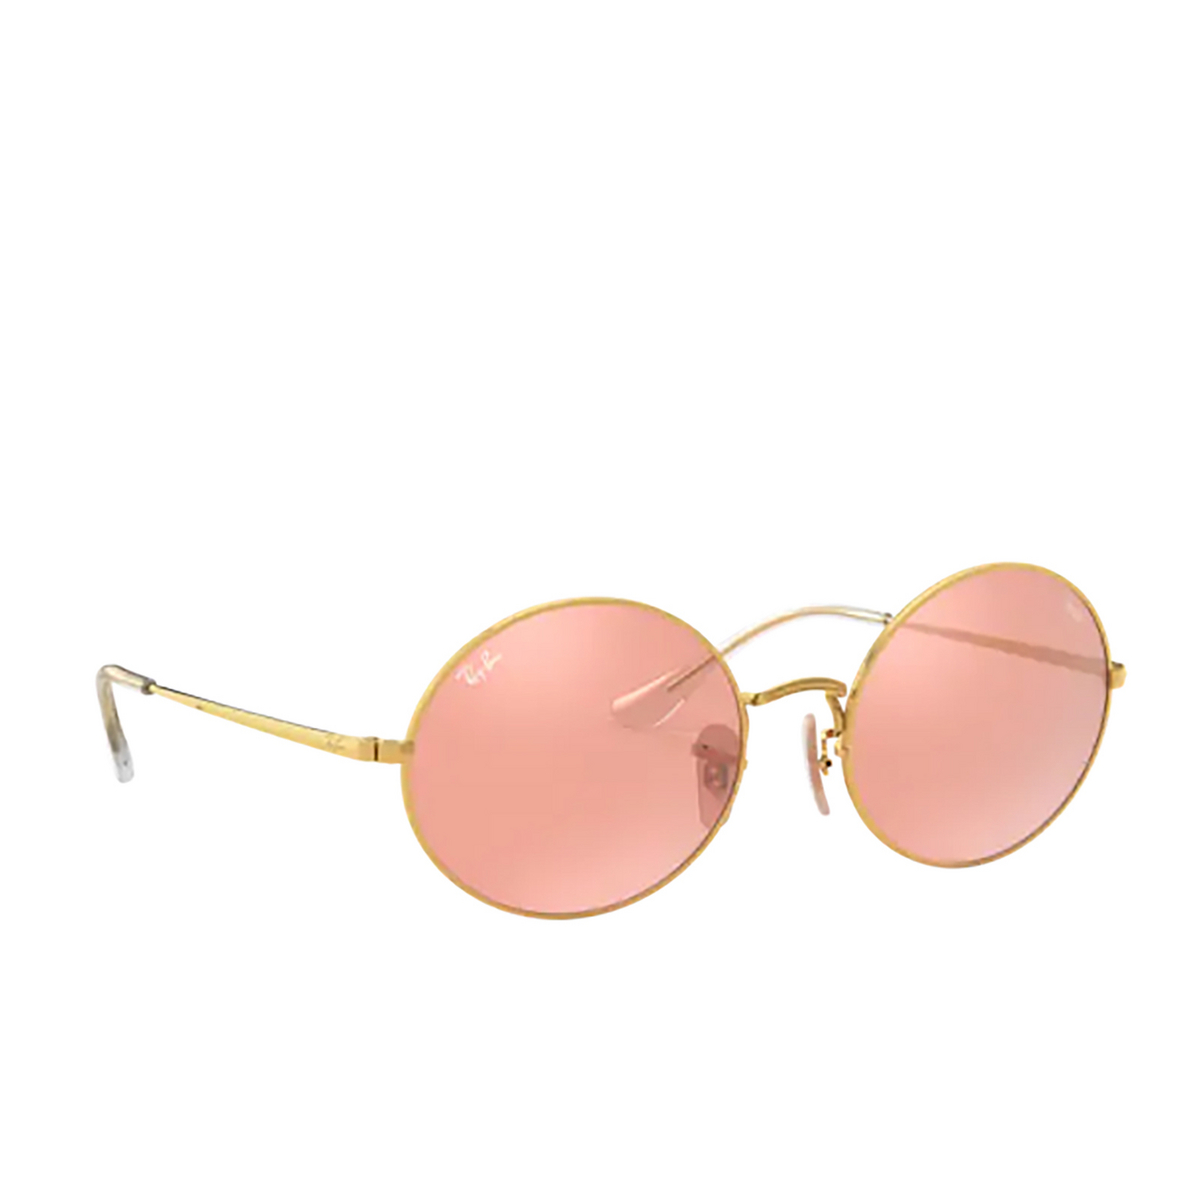 Ray-Ban® Oval Sunglasses: Oval RB1970 color Arista 001/3E - three-quarters view.